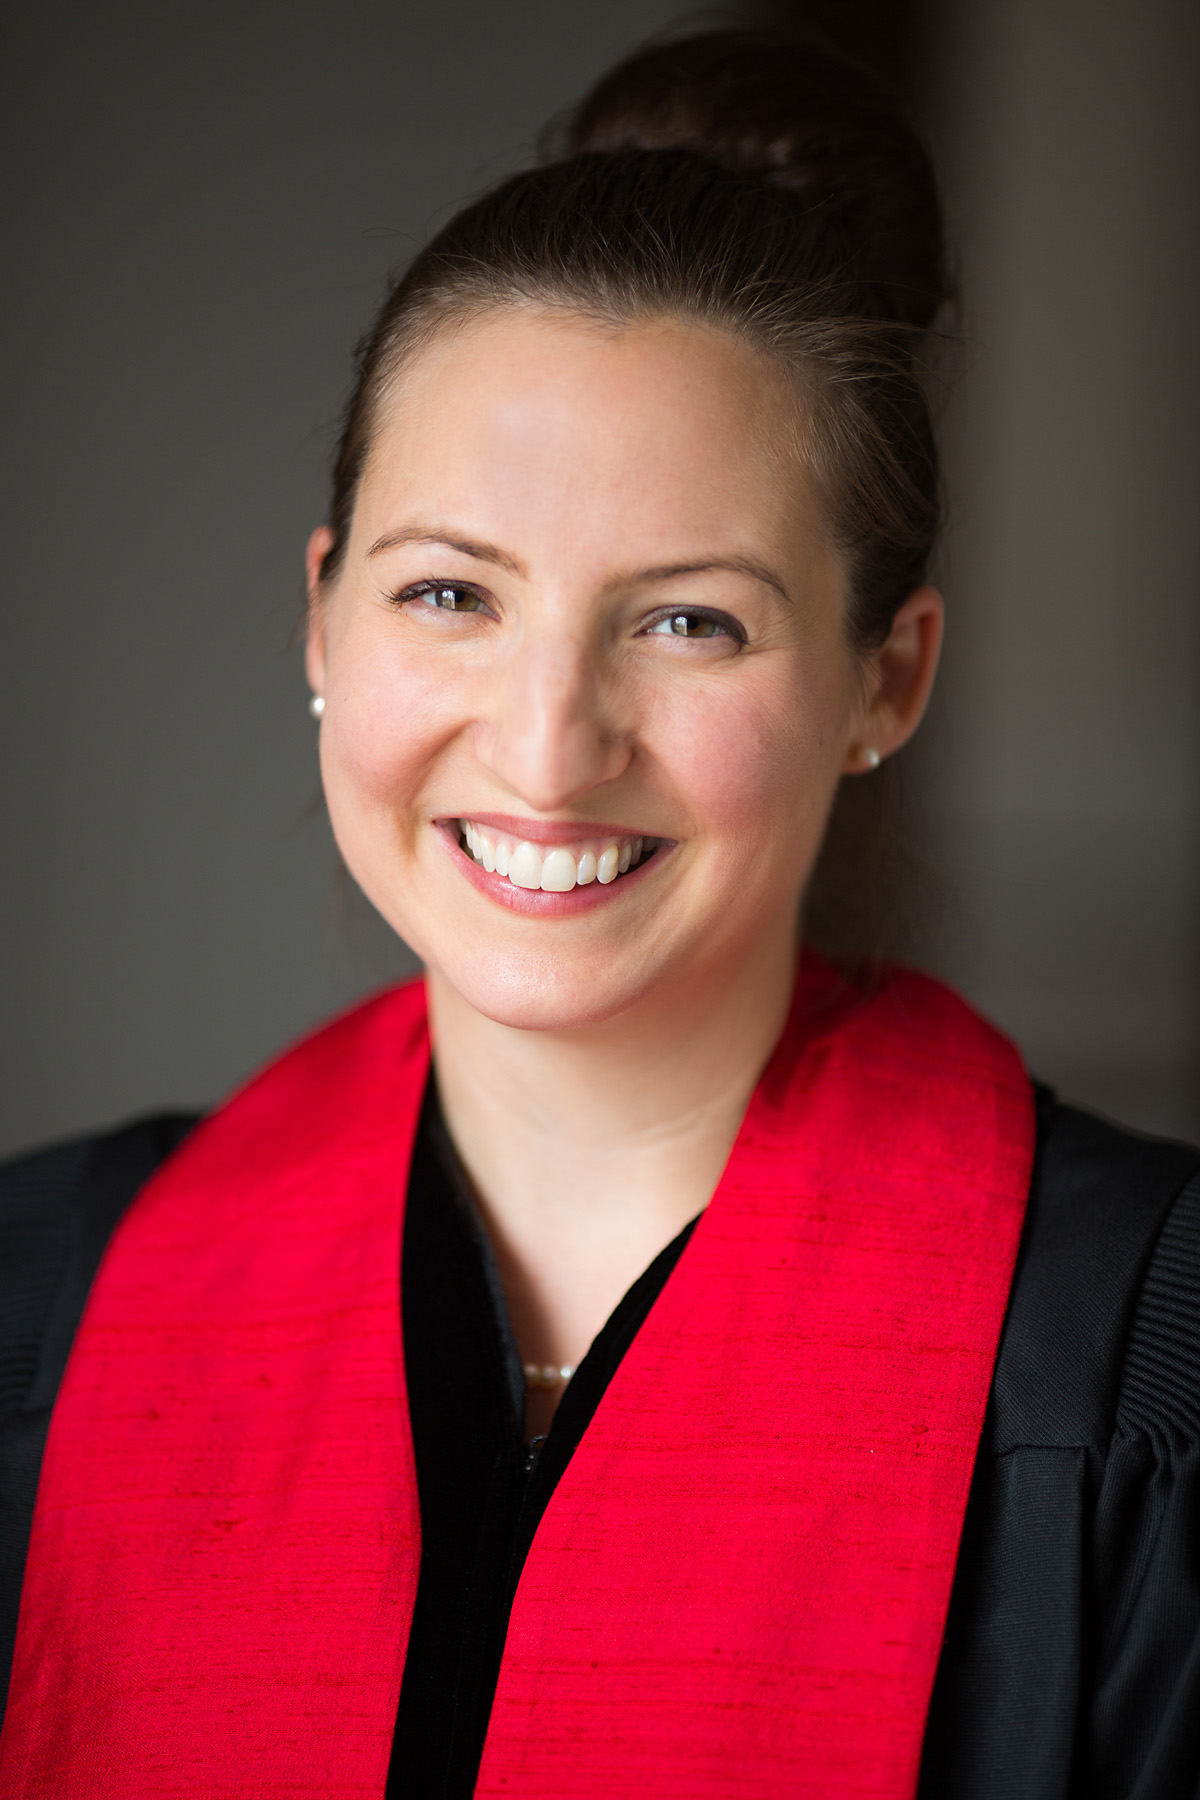 Rev. Claire Feingold Thoryn